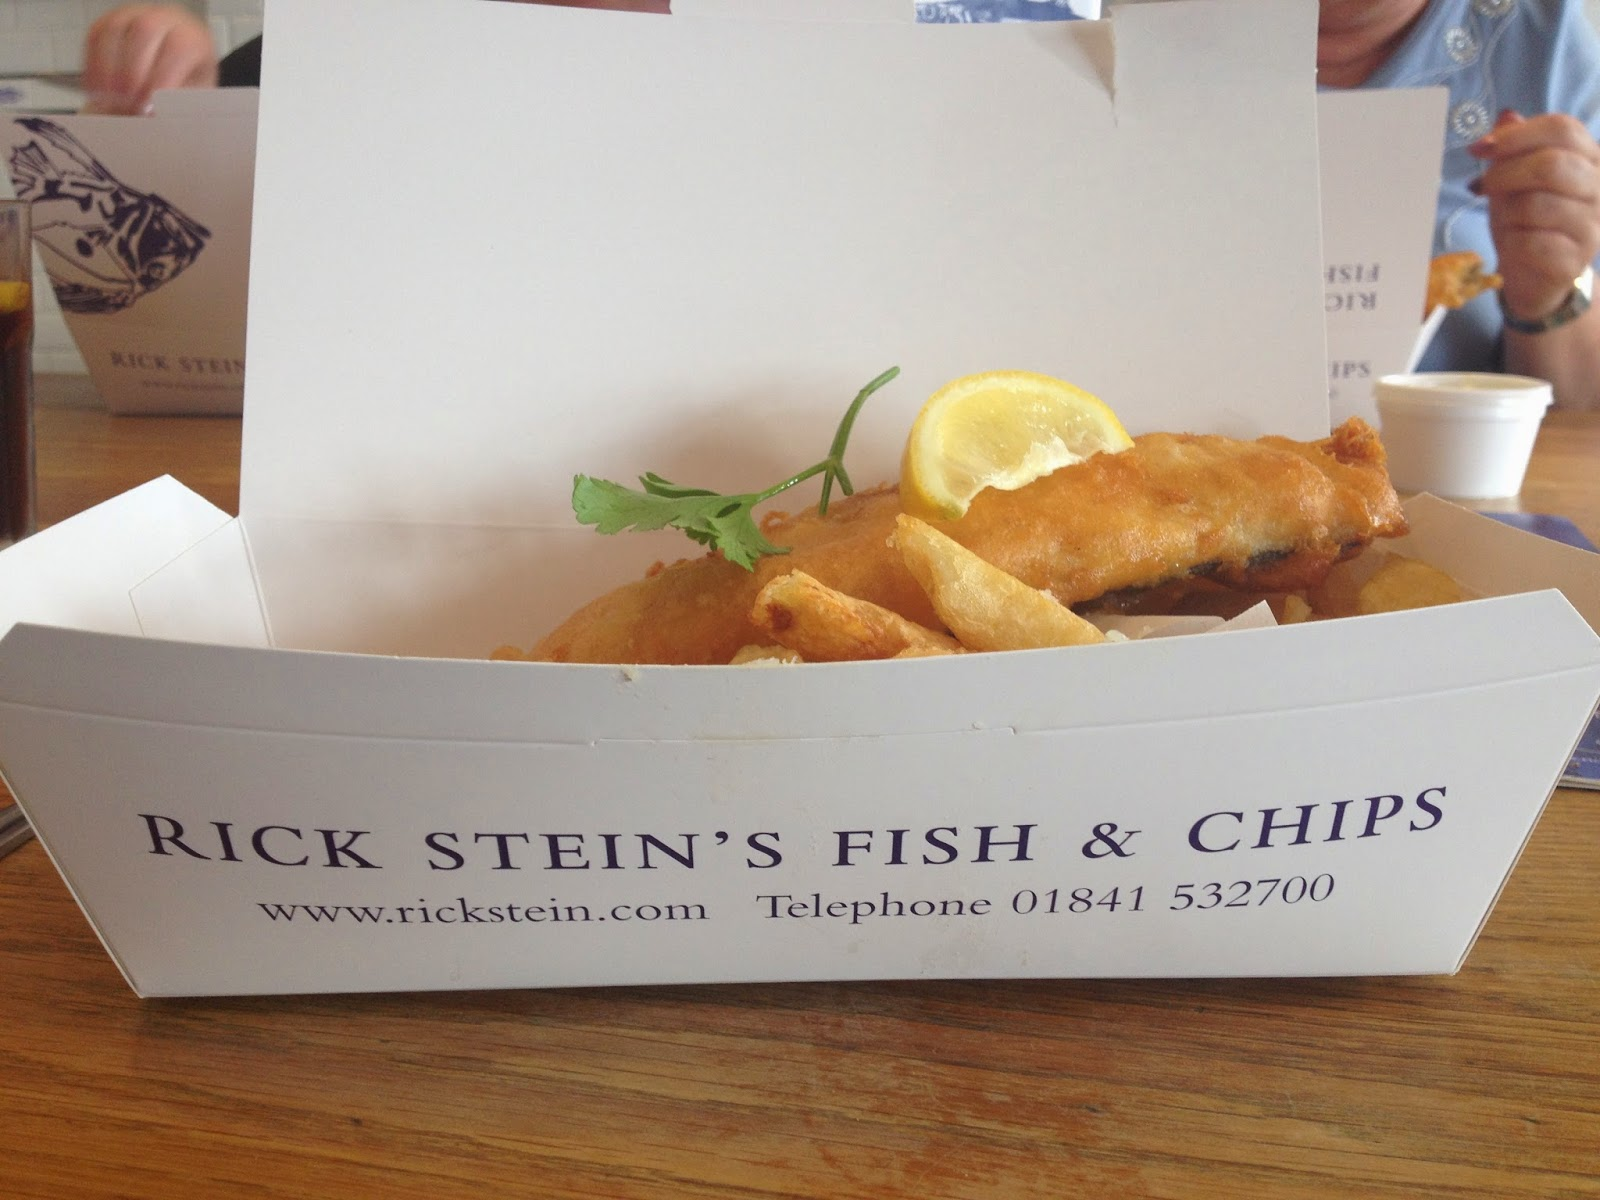 Breakfast at caroline 39 s mug of the month padstow rick for Rick s fish and pet